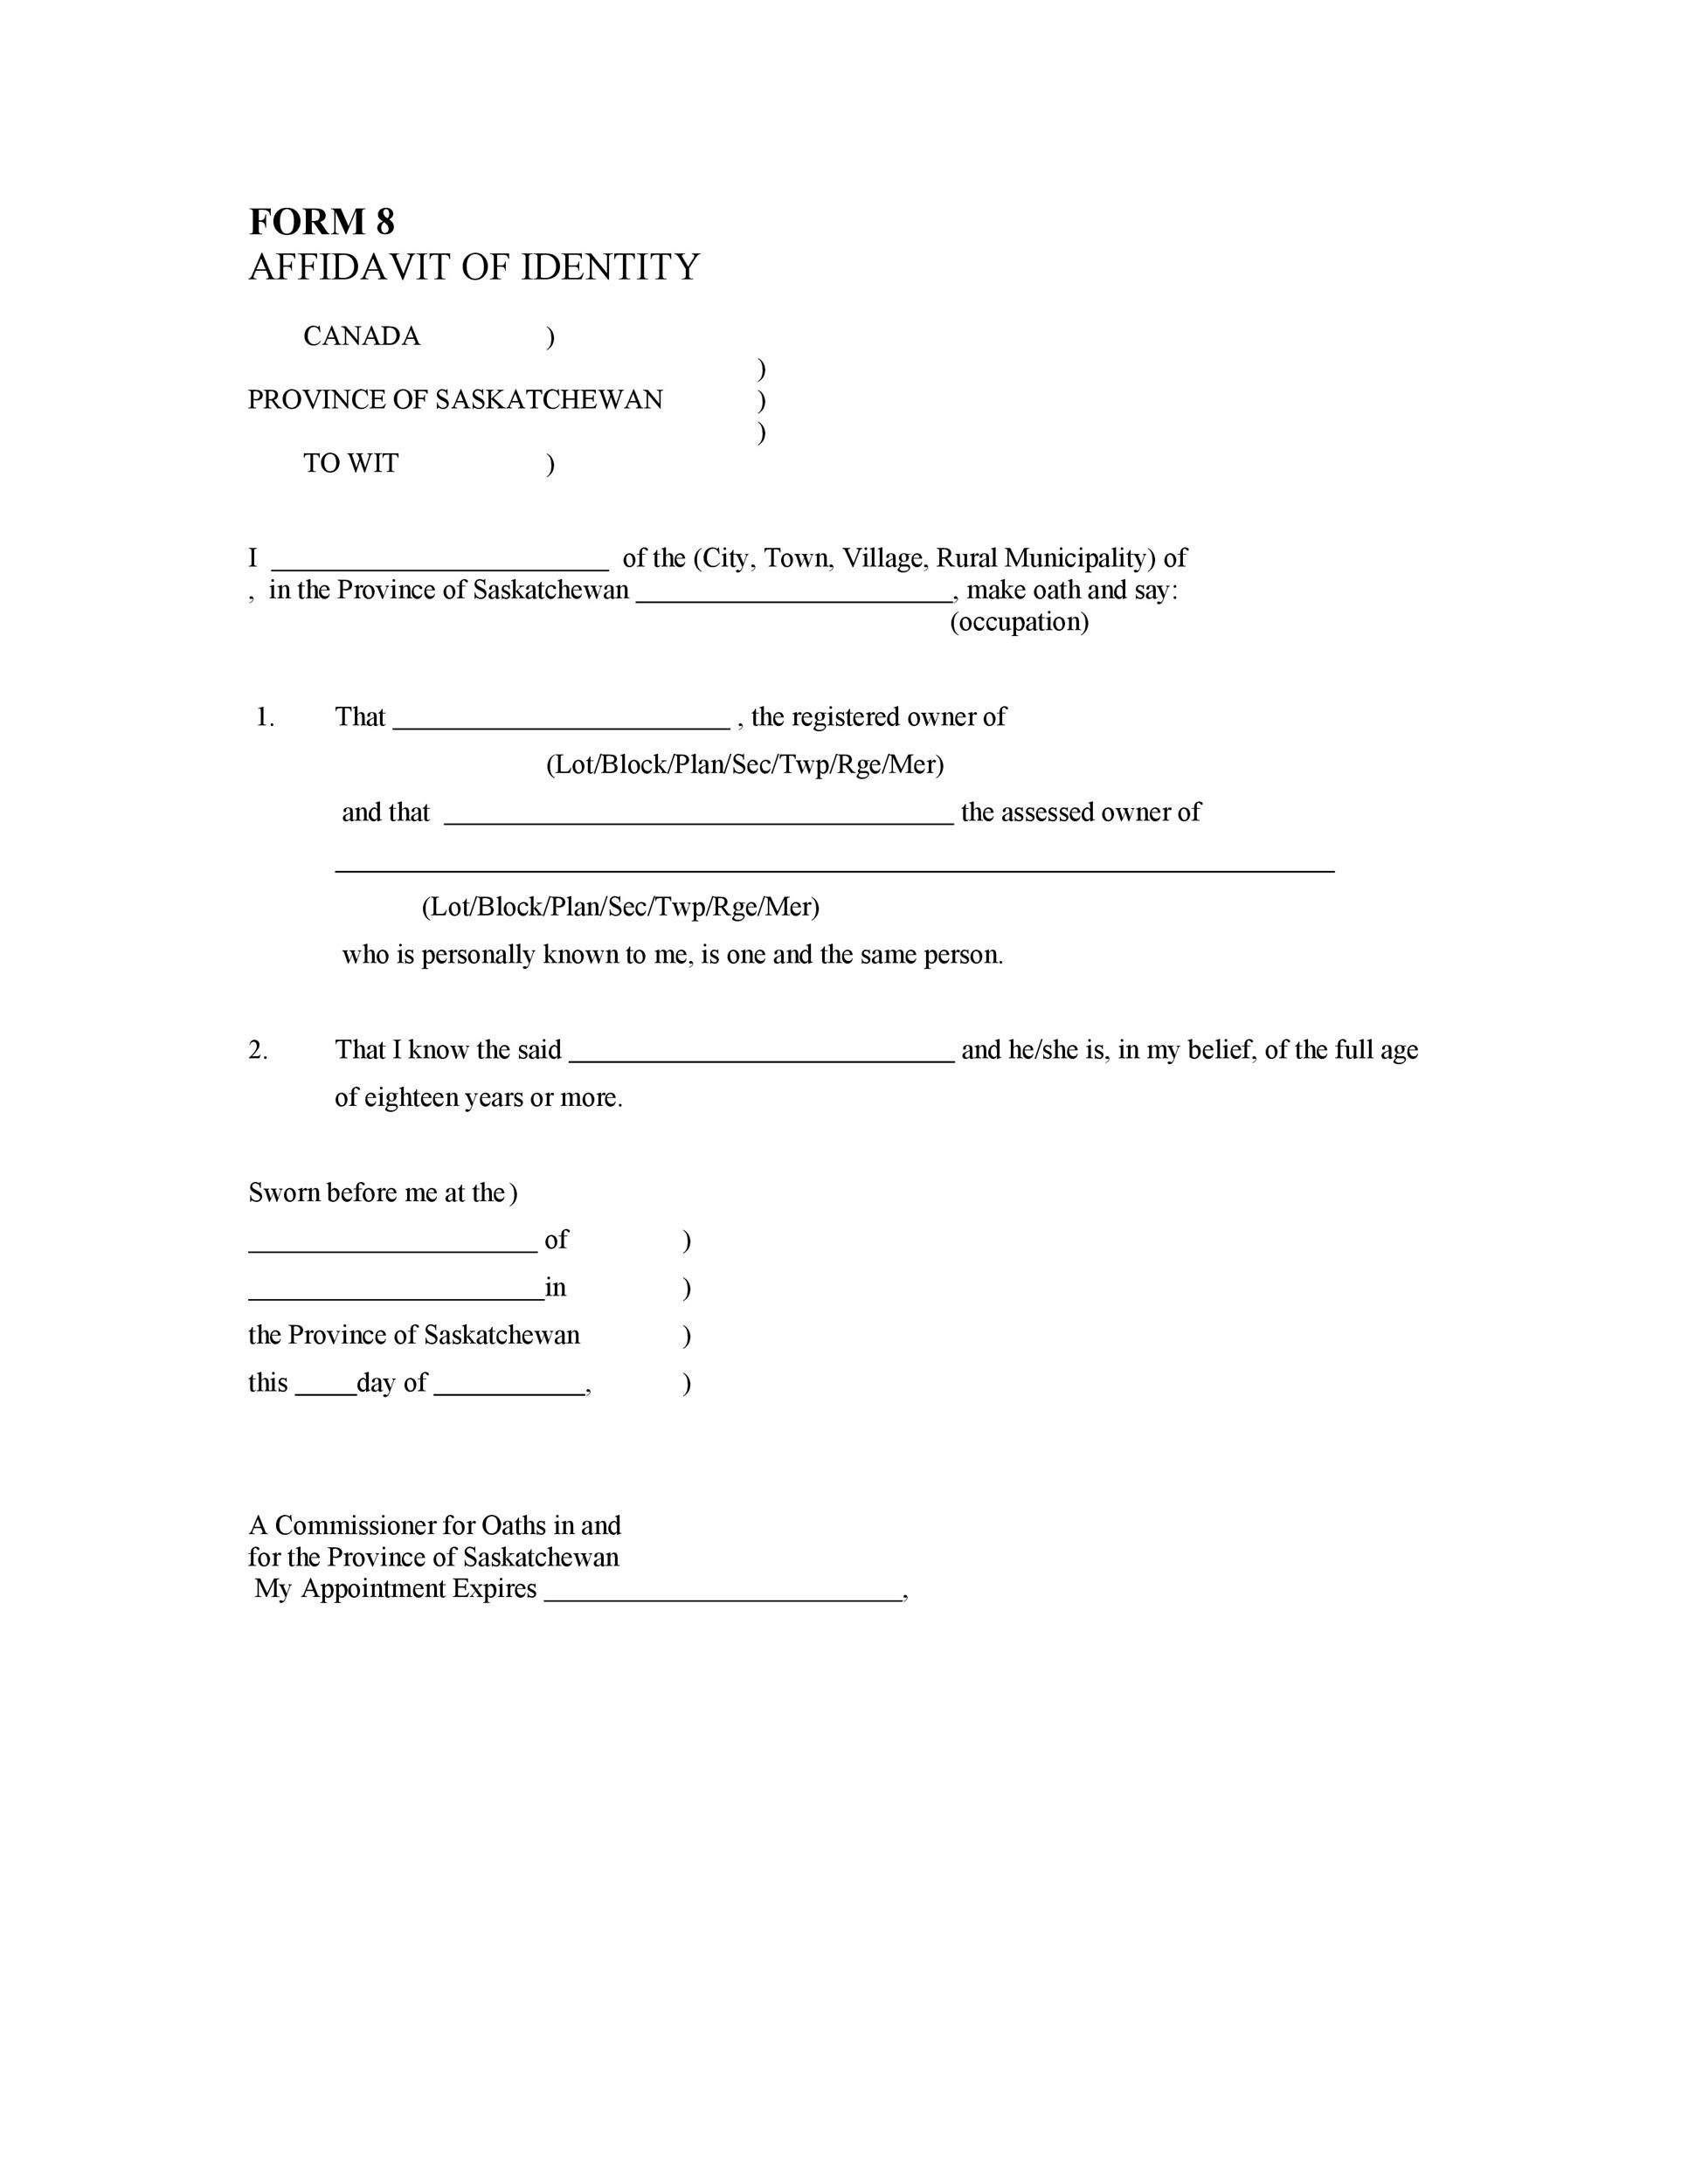 48 Free Affidavit of Identity Forms (MS Word) ᐅ Template Lab